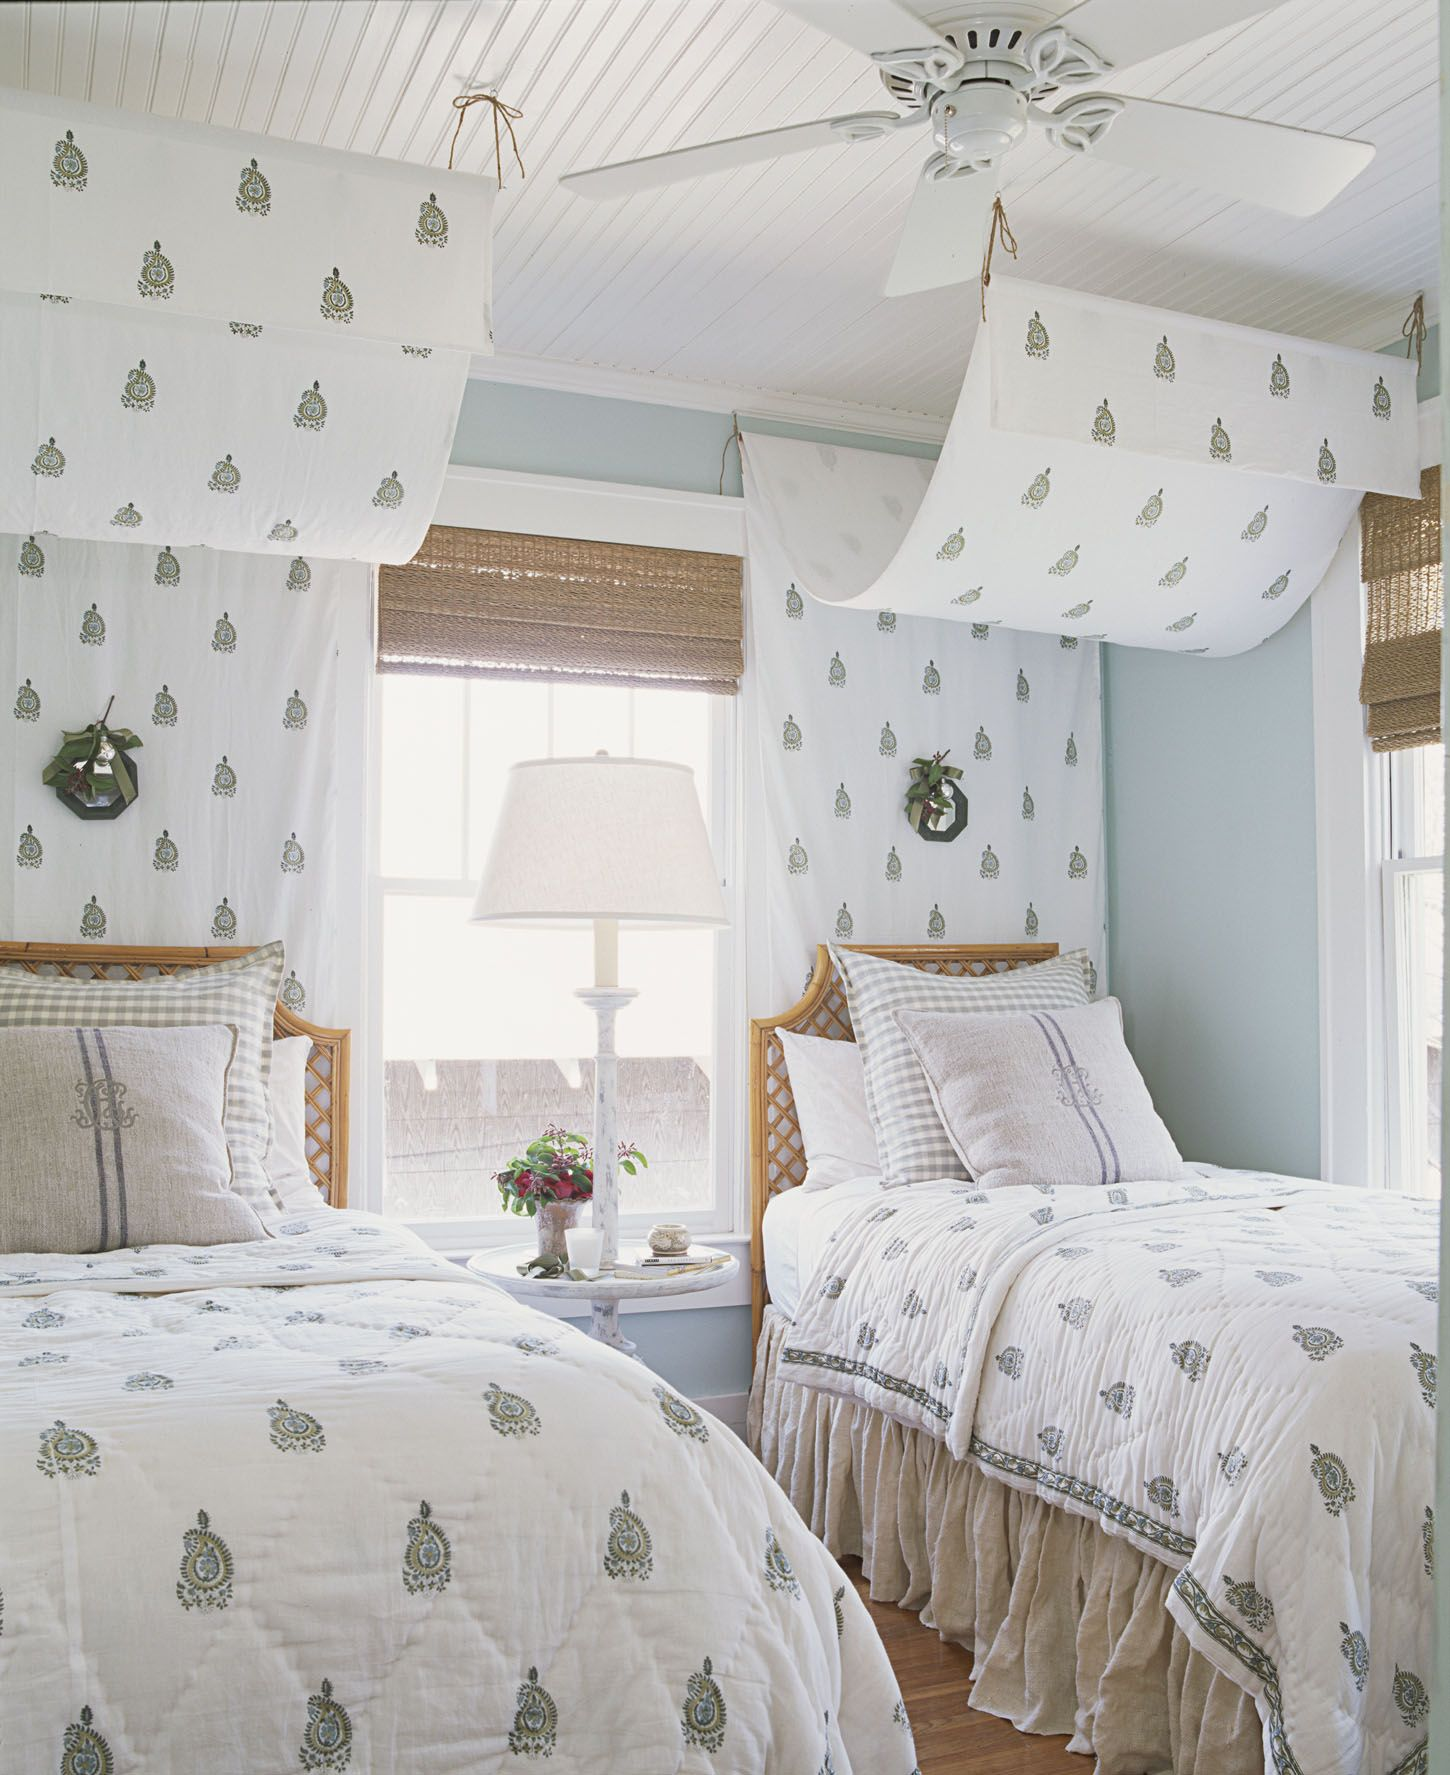 room with a your accents decorate is her decor little trendy s flourishing reflect personality how space to update an ready pin darling that spruce for up